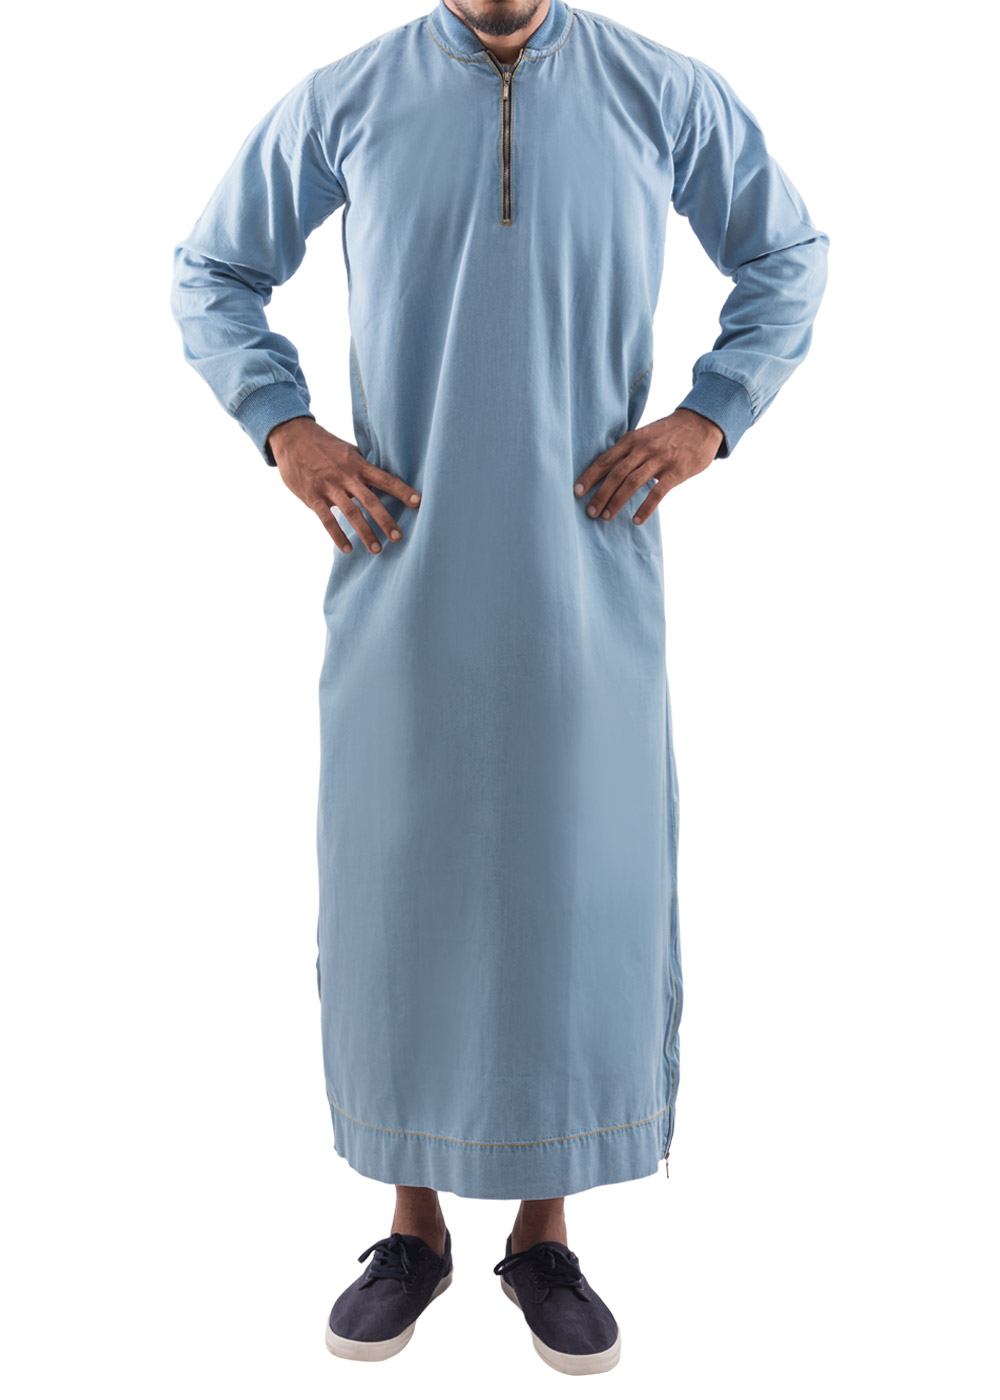 Mens Denim Thobe islamic clothing comfortable with zipper and pockets